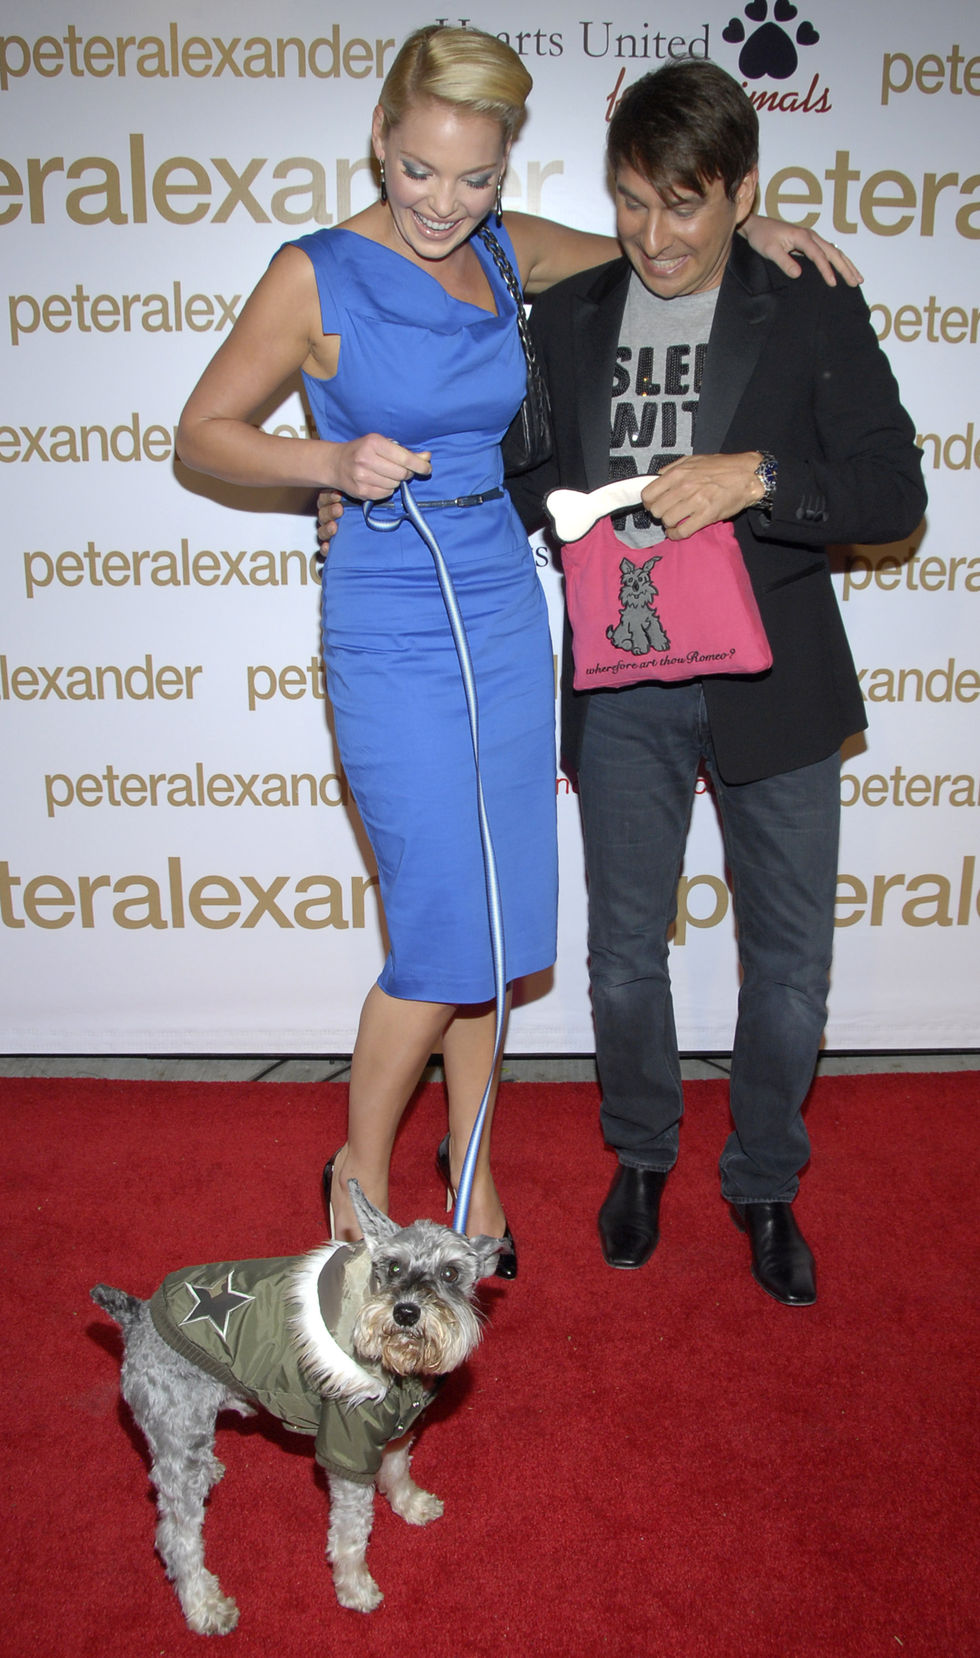 katherine-heigl-peter-alexanders-new-store-launch-party-in-los-angeles-01